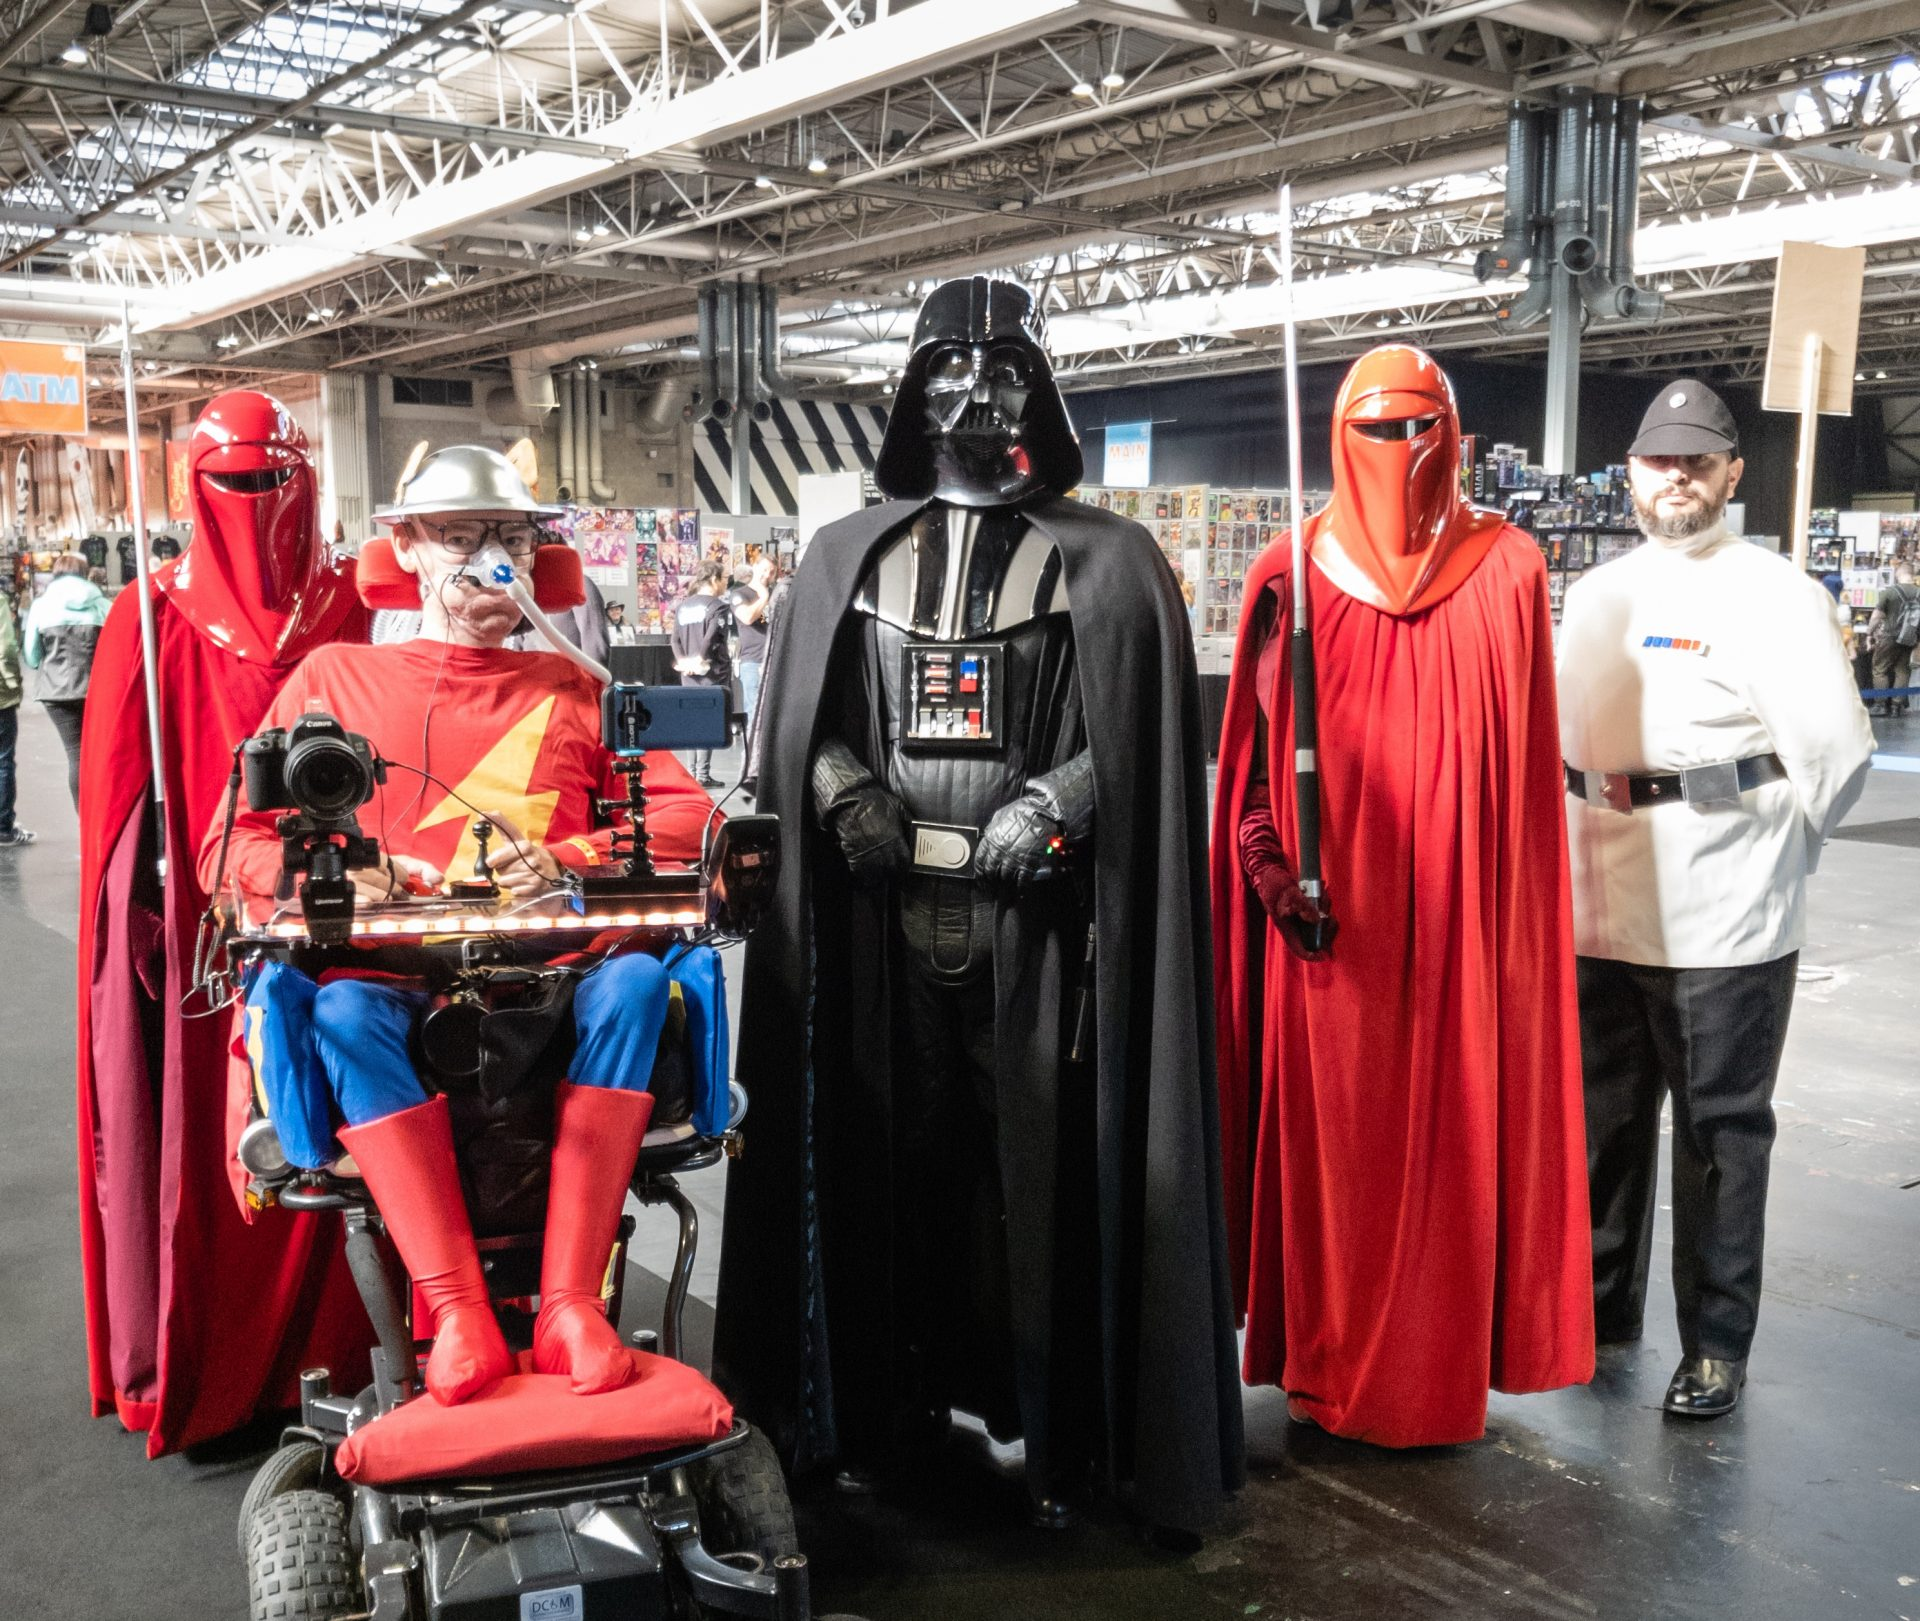 Daniel Baker dressed as Jay Garrick, The Flash Flanked by two imperial guards, Darth Vader and an Imperial commander